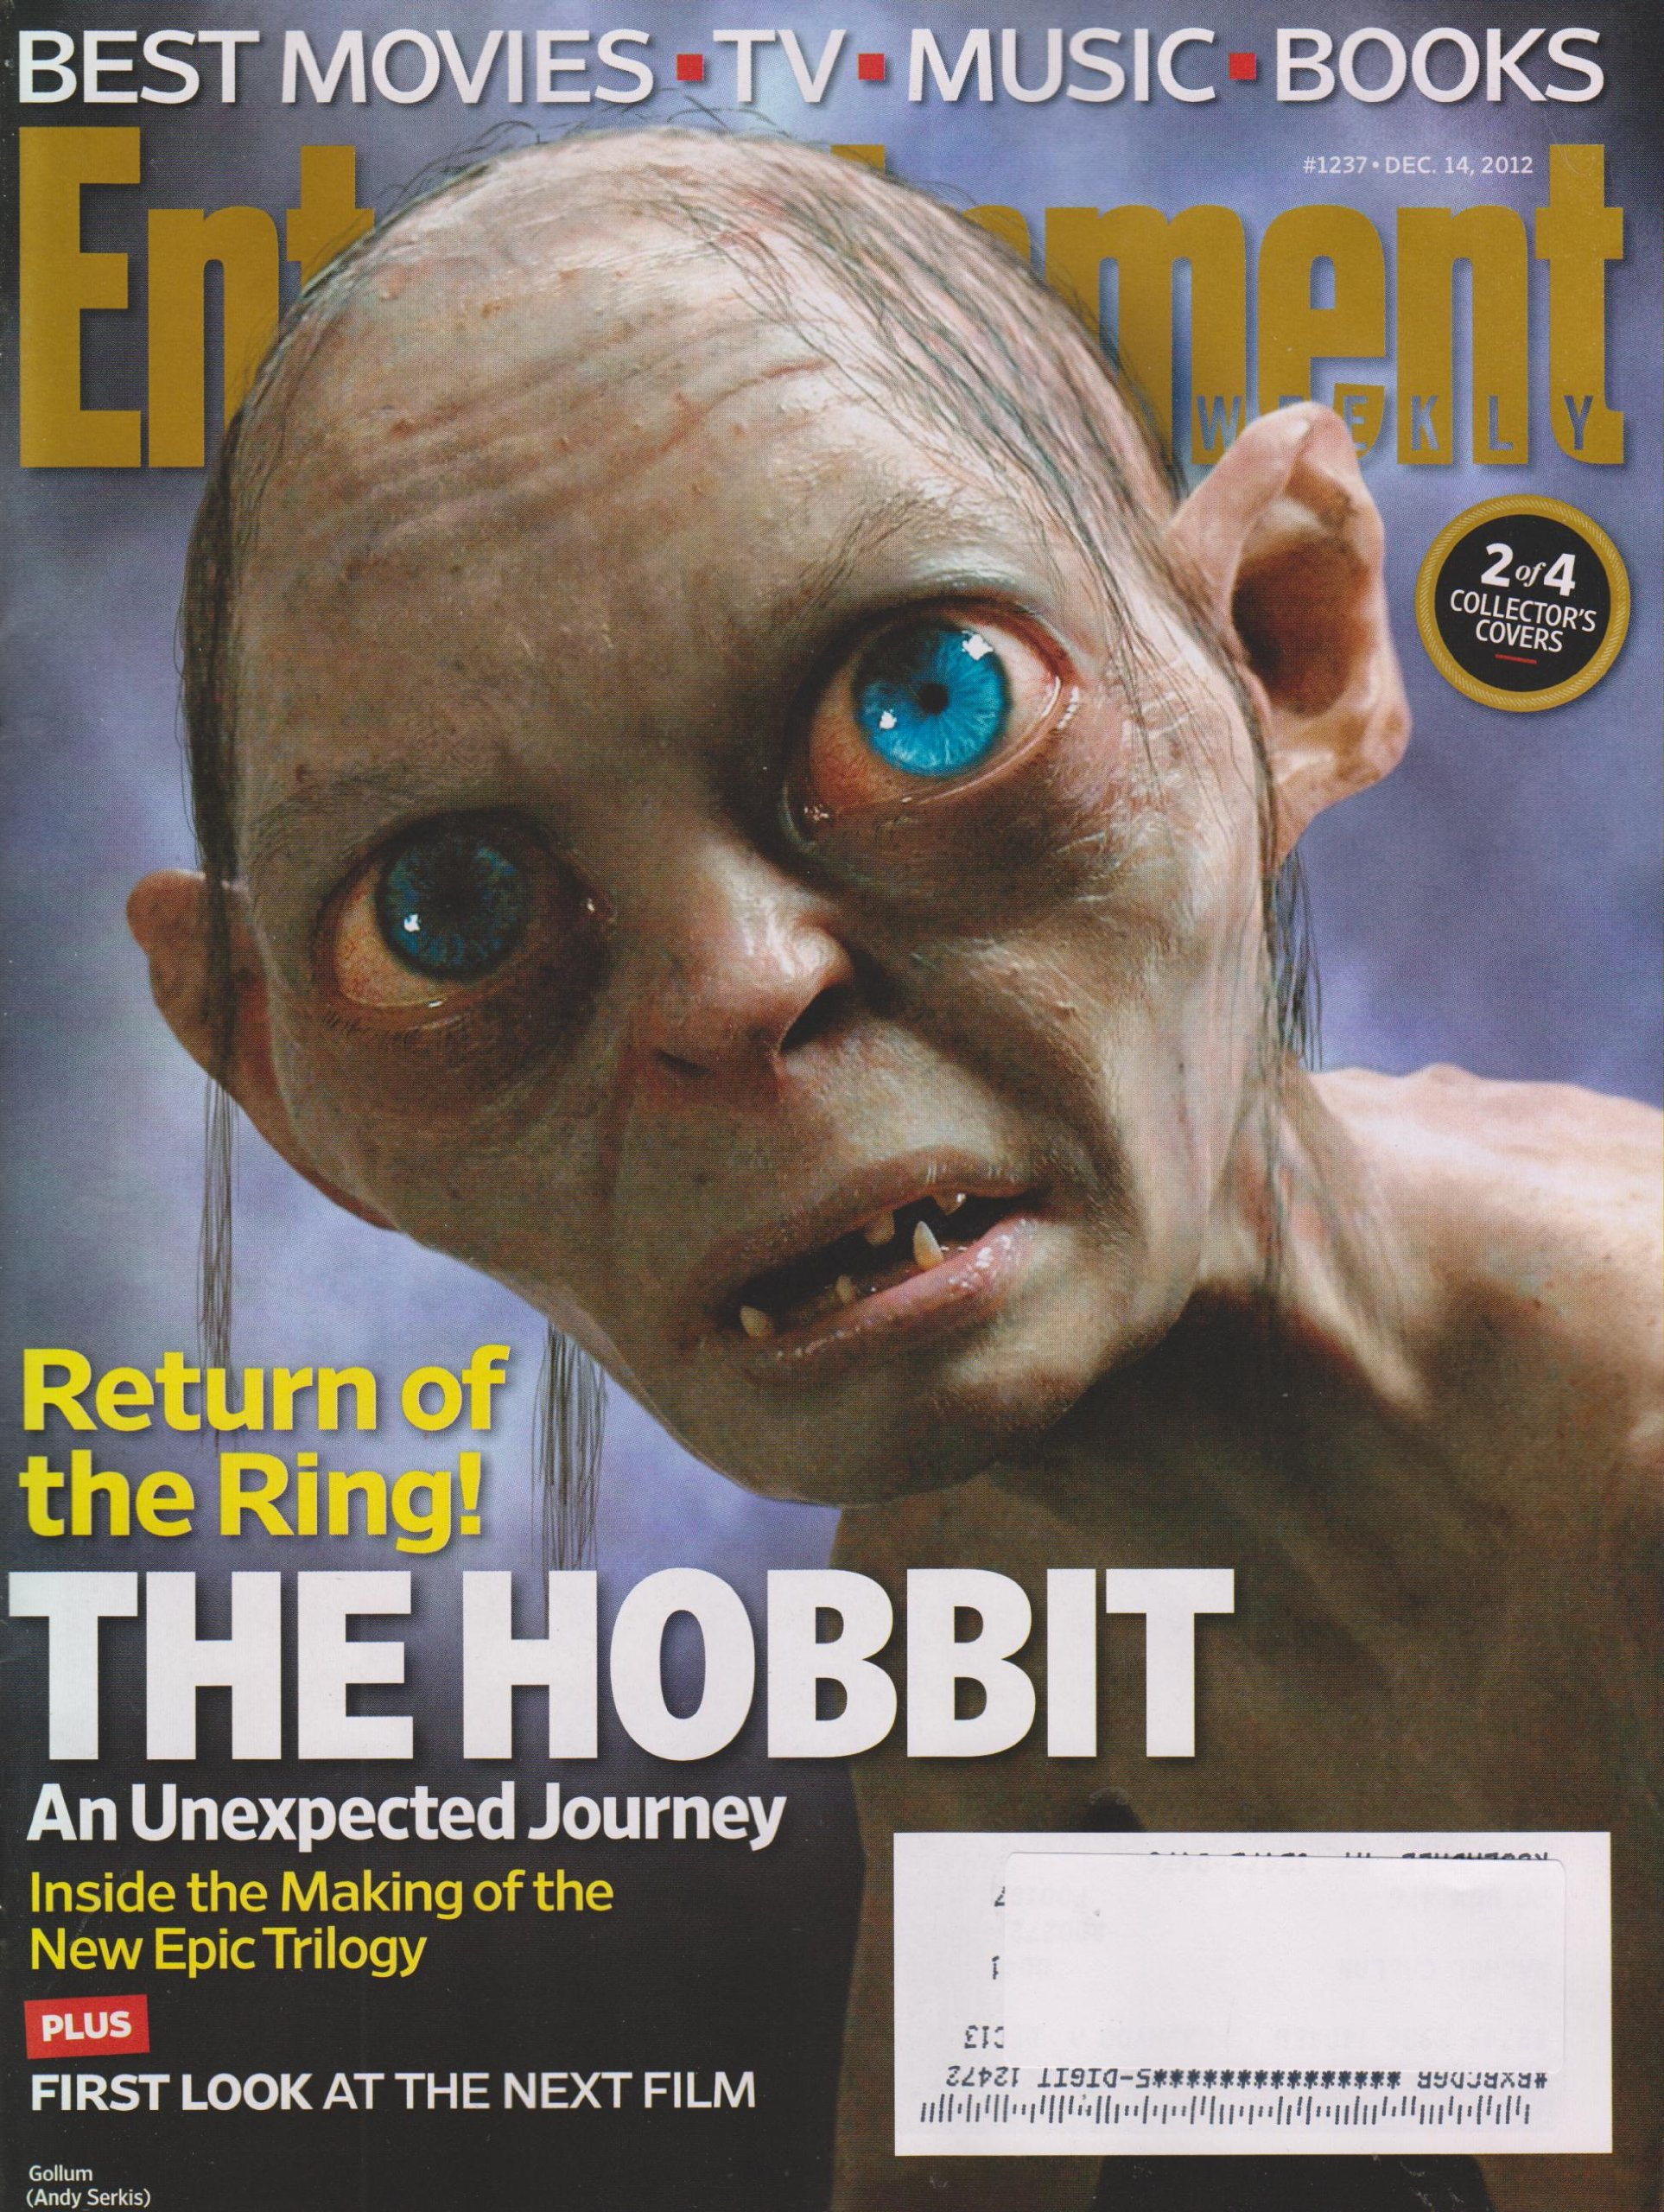 Entertainment Weekly December 14, 2012 the Hobbit Gollum Cover#2 of 4 ebook